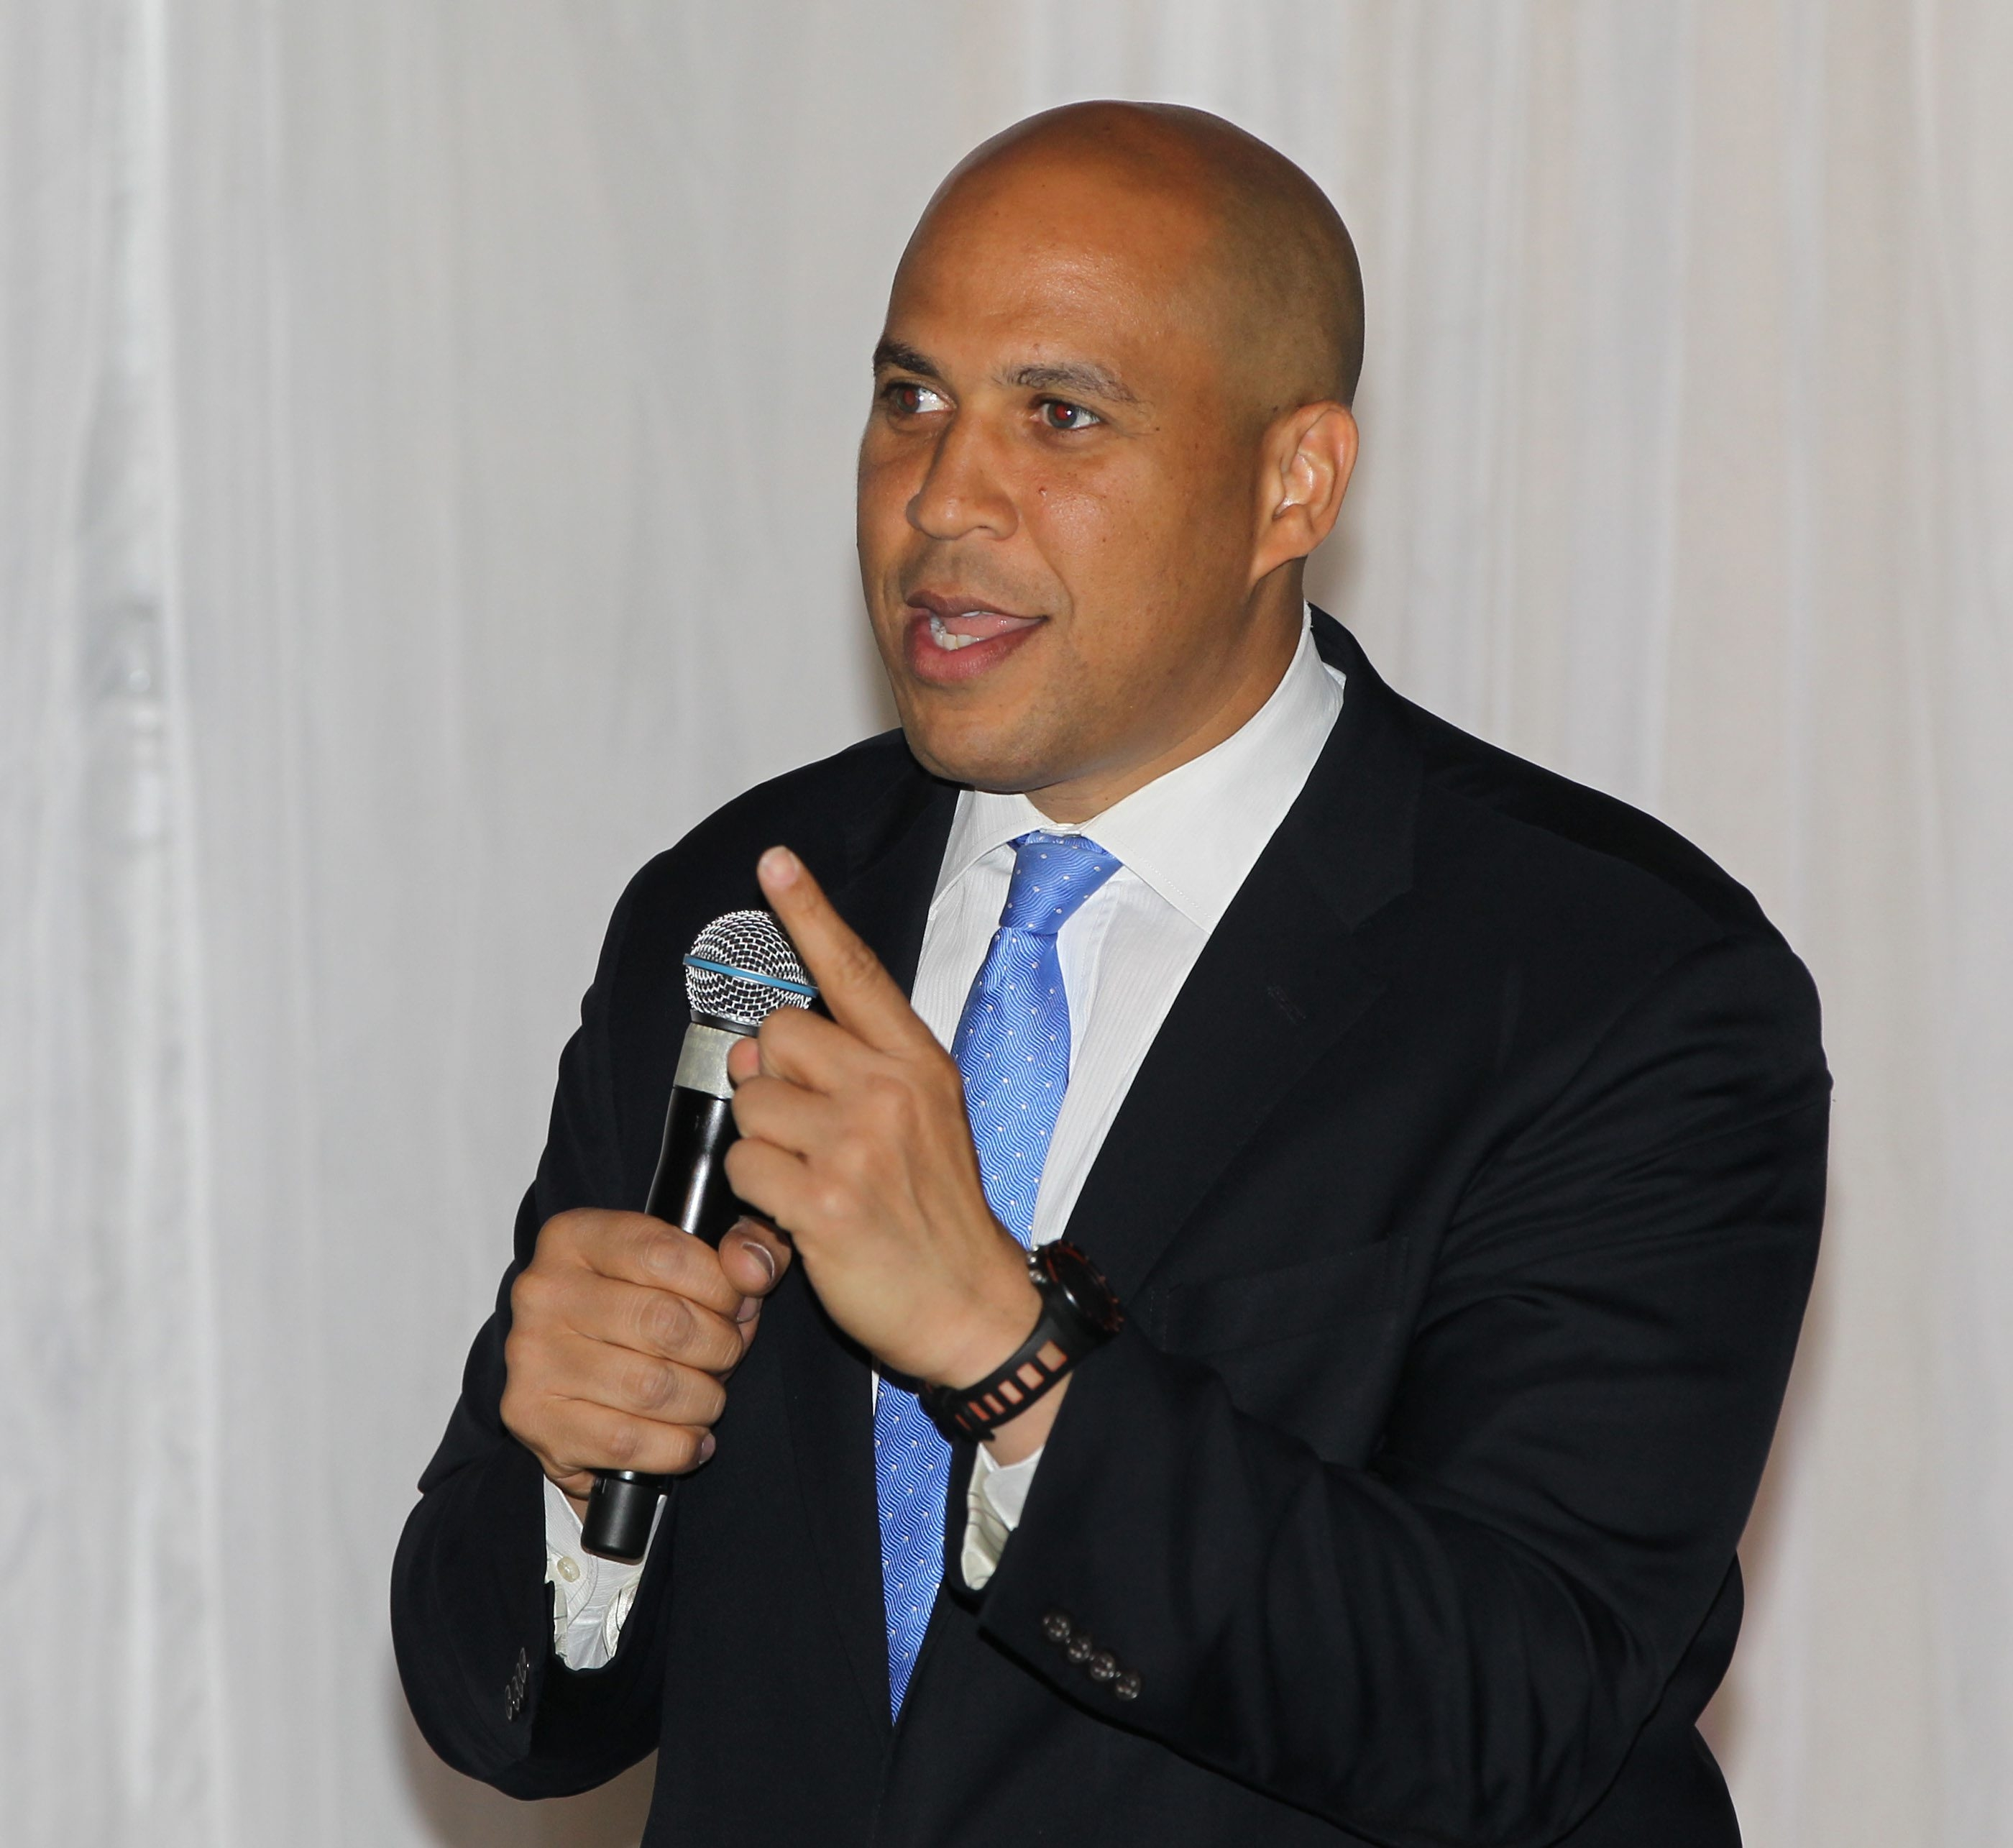 Cory Booker delivers the main address at the Jewish Federation of Greater Buffalo dinner Monday night in the Hyatt Regency Buffalo. He urged those at the dinner to work together for change.